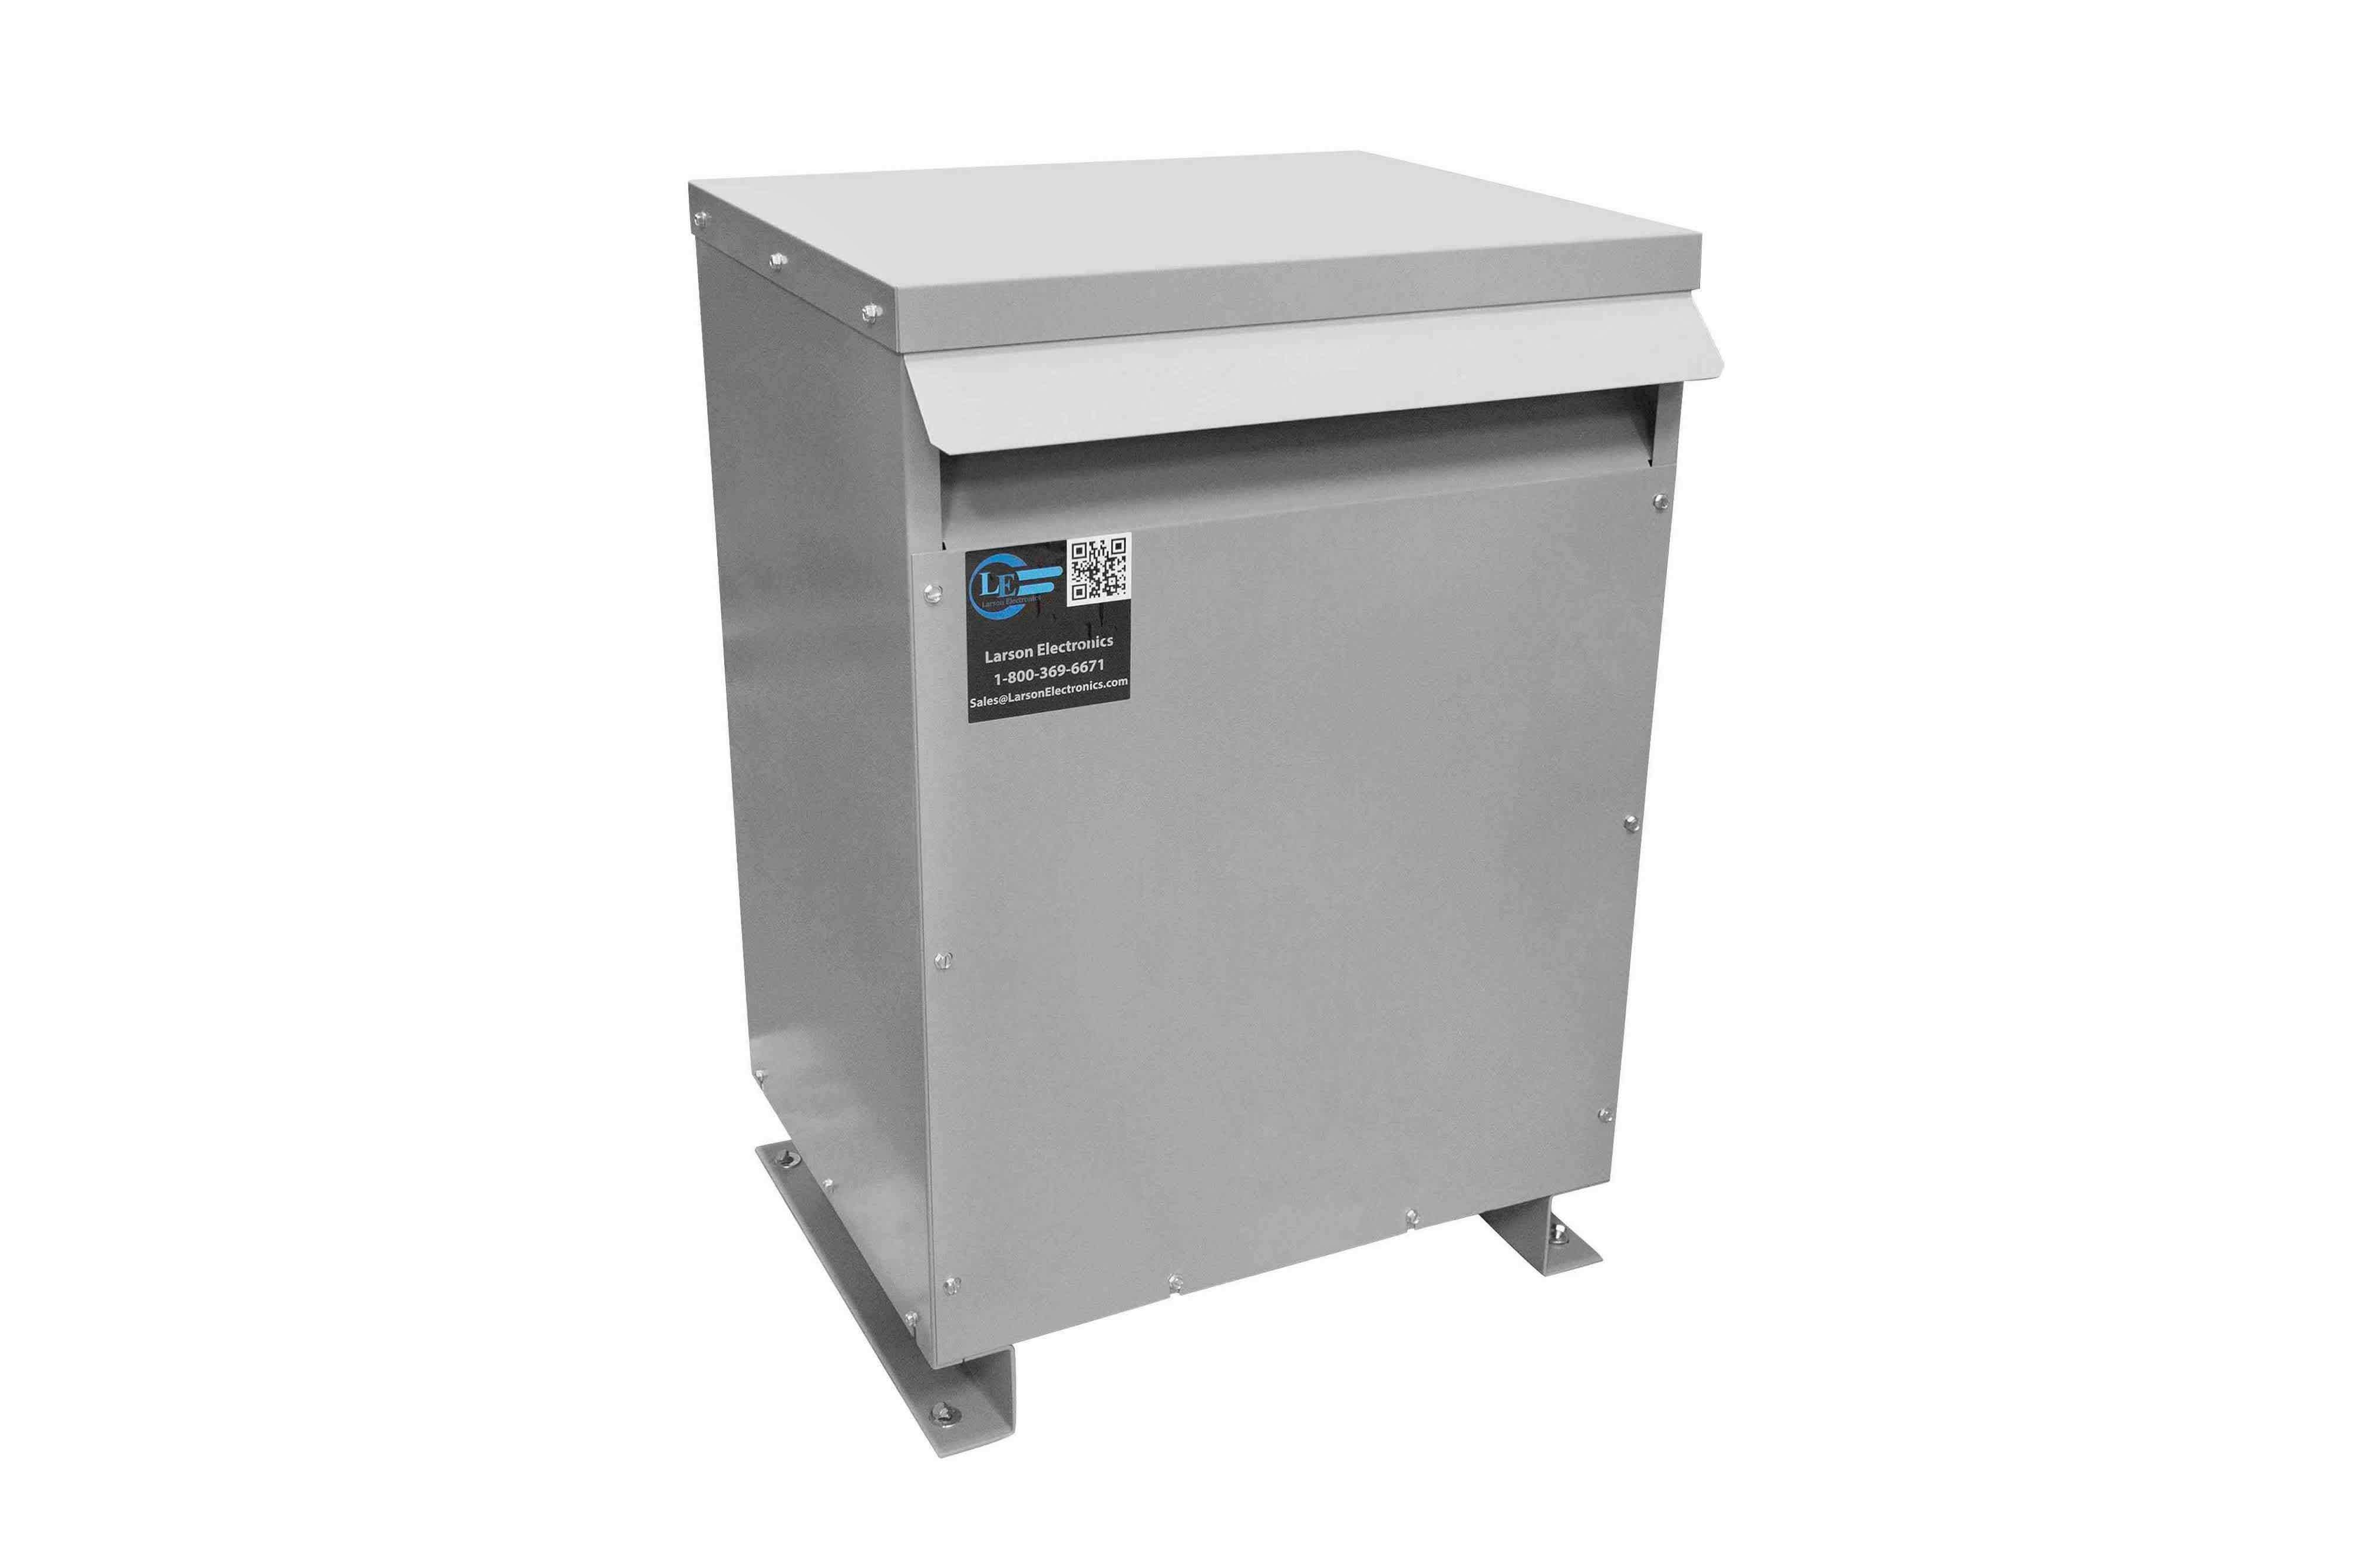 700 kVA 3PH Isolation Transformer, 400V Delta Primary, 480V Delta Secondary, N3R, Ventilated, 60 Hz